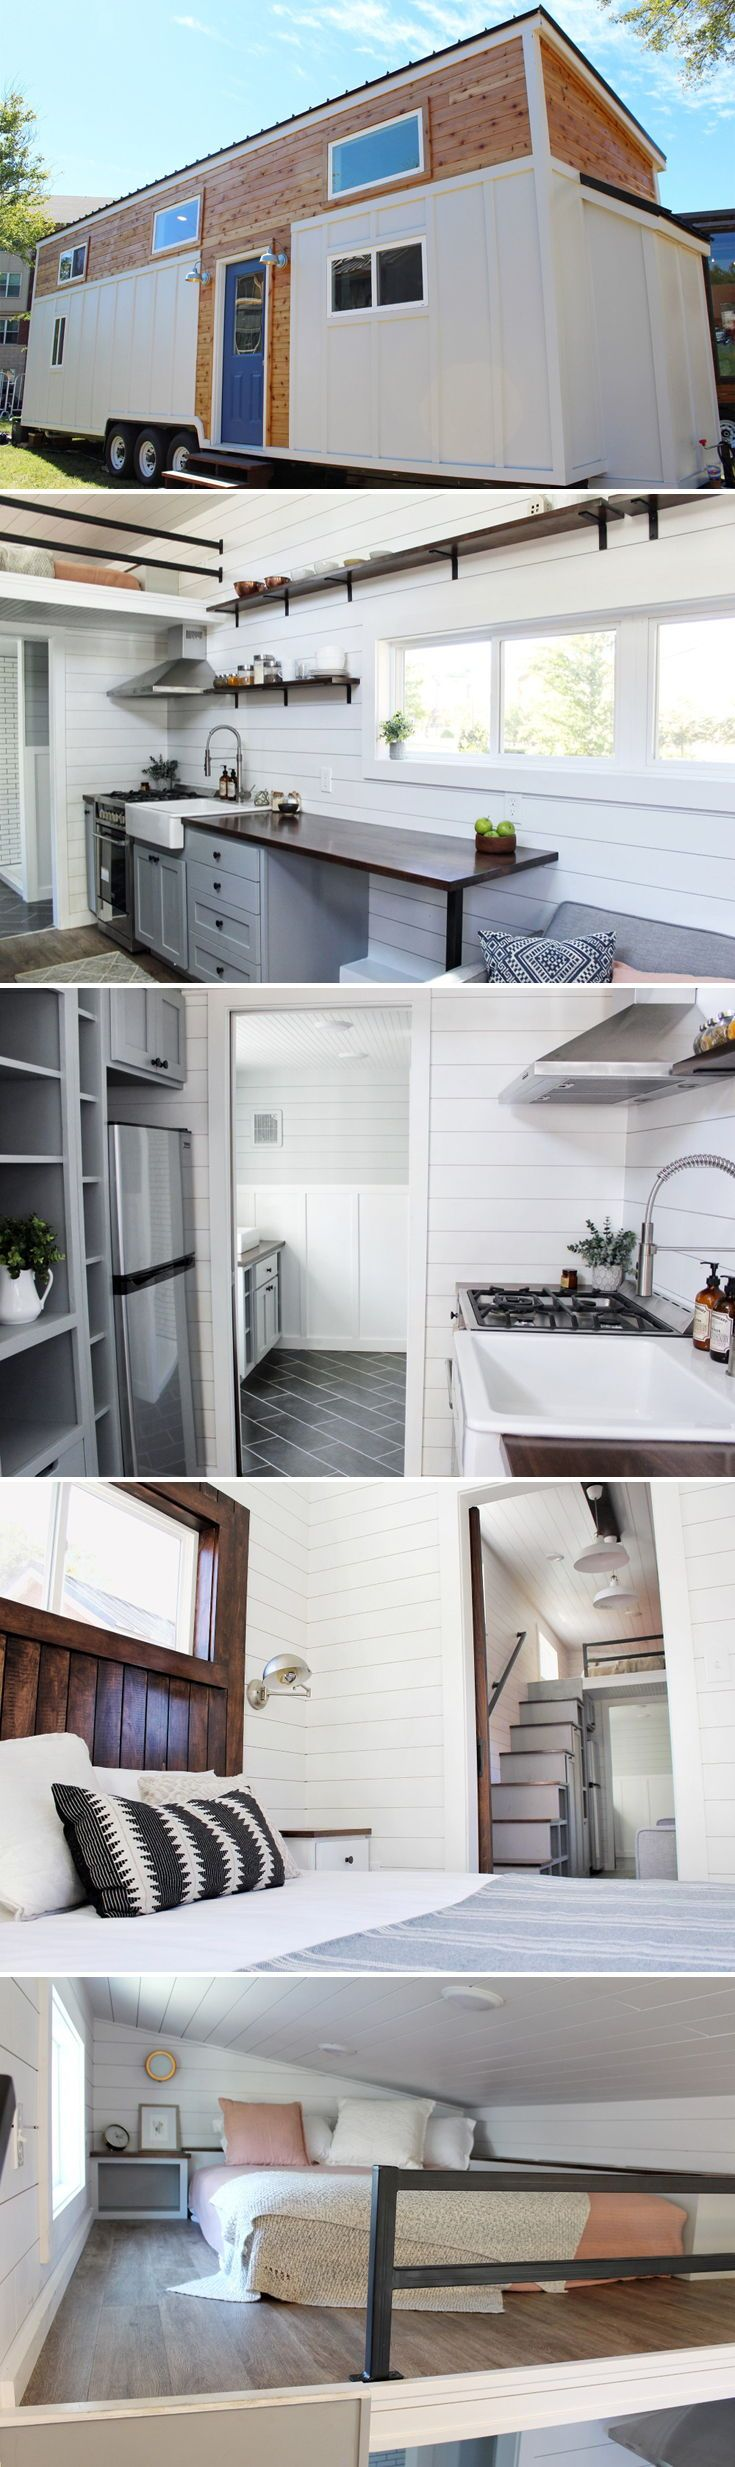 "This gorgeous modern tiny house is the ""Everest"" by Mustard Seed Tiny Homes. The 34-foot tiny home features a ground floor master bedroom with vaulted ceilings, full size bed, storage drawers under the bed, and a large closet."